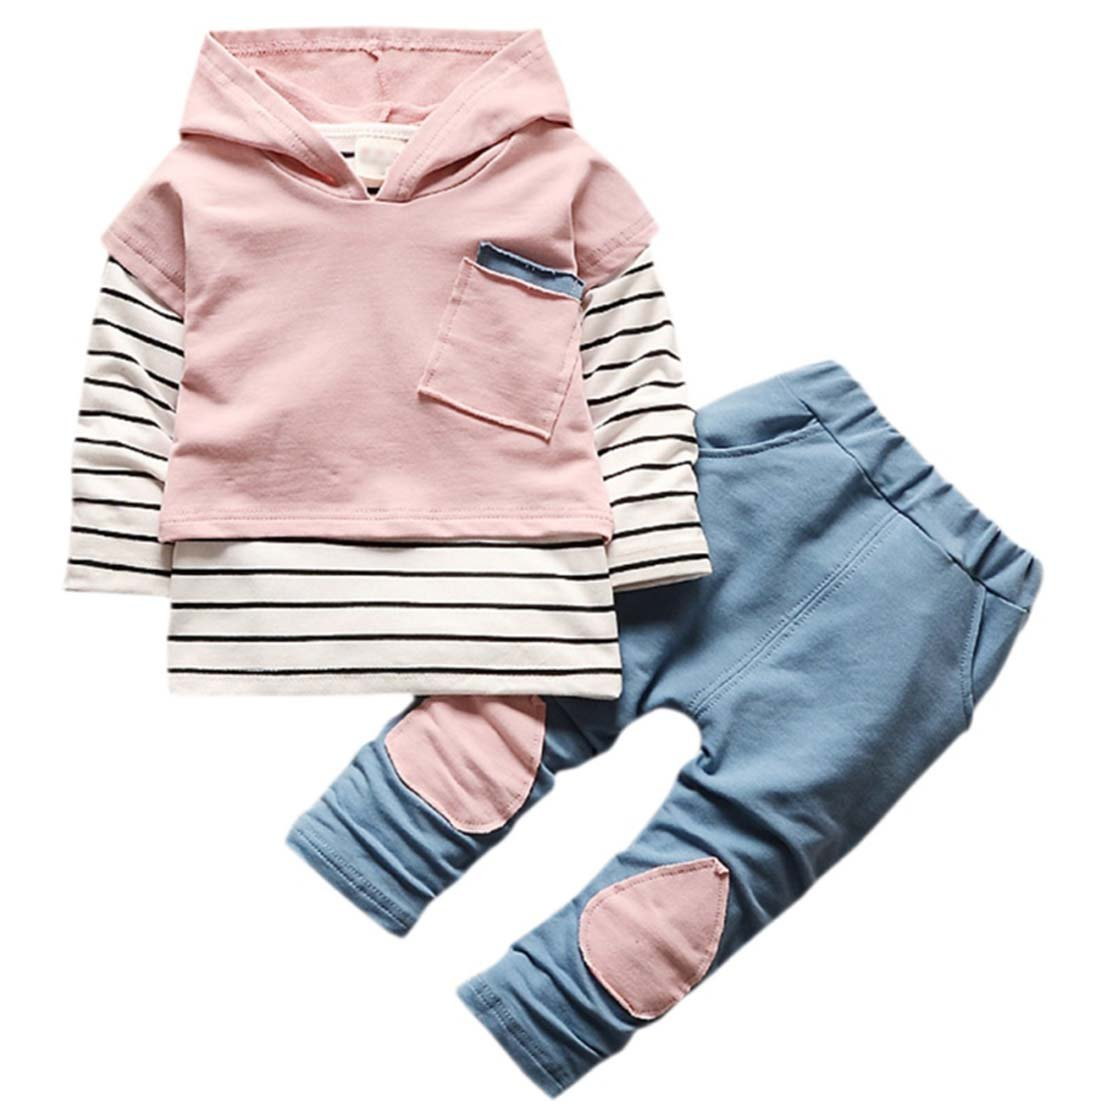 New Toddler Suit Boys Girls Children Clothing Long Sleeve Striped Hoodie Tops + Denim Pants Sets Pink 12m